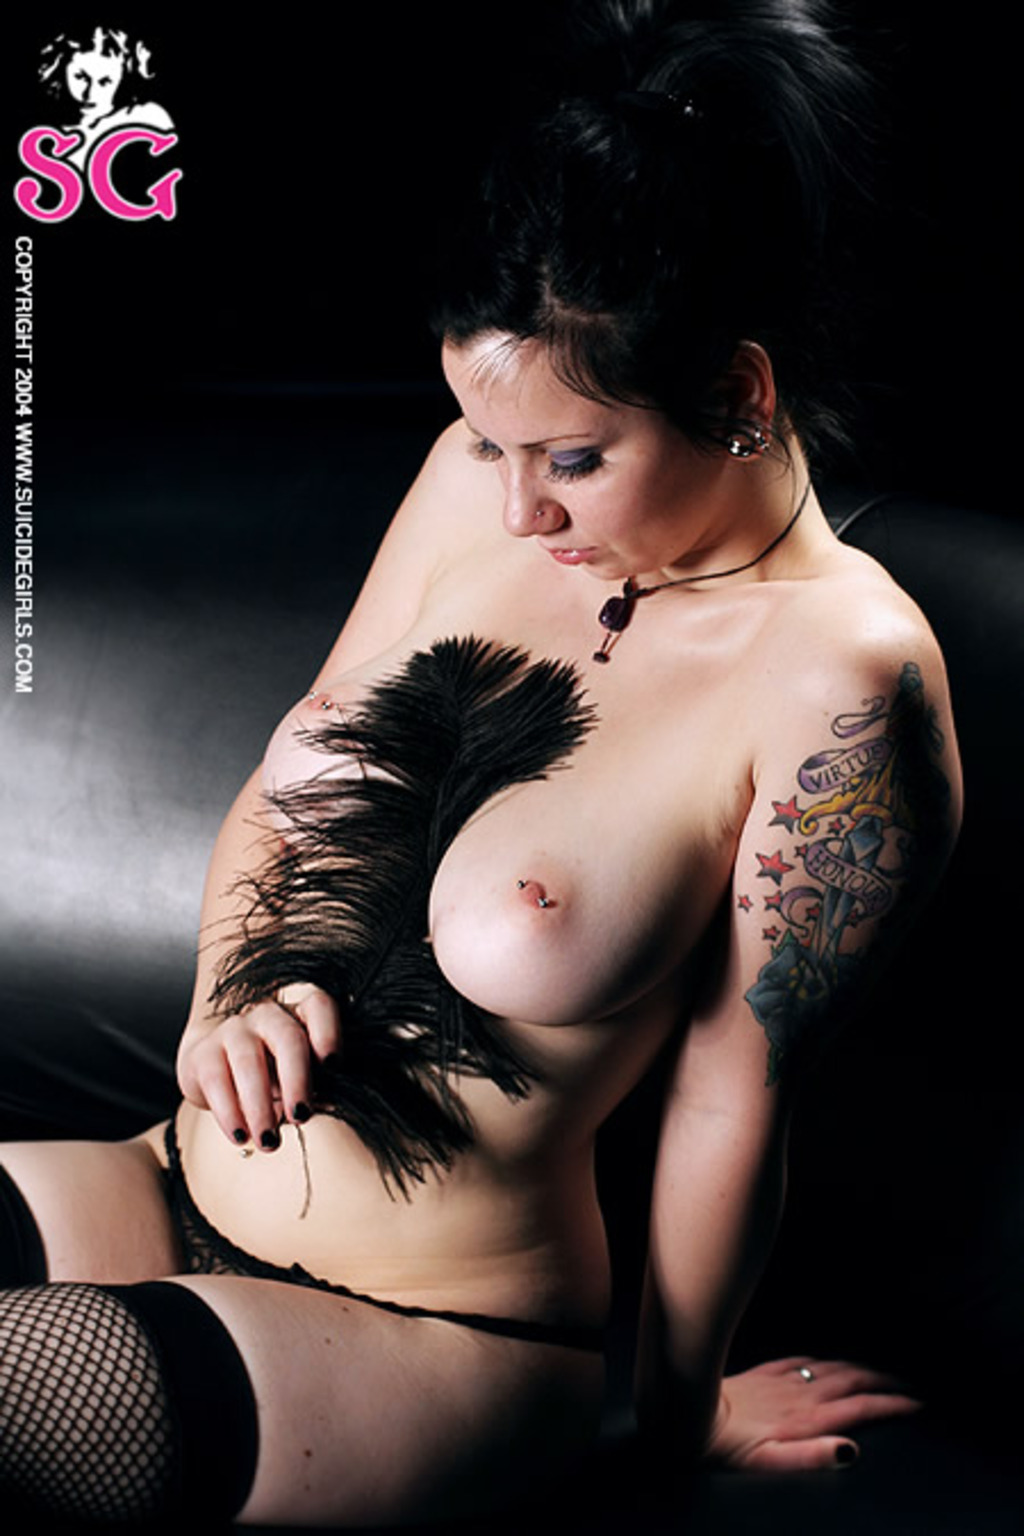 A another tribute to SuicideGirls